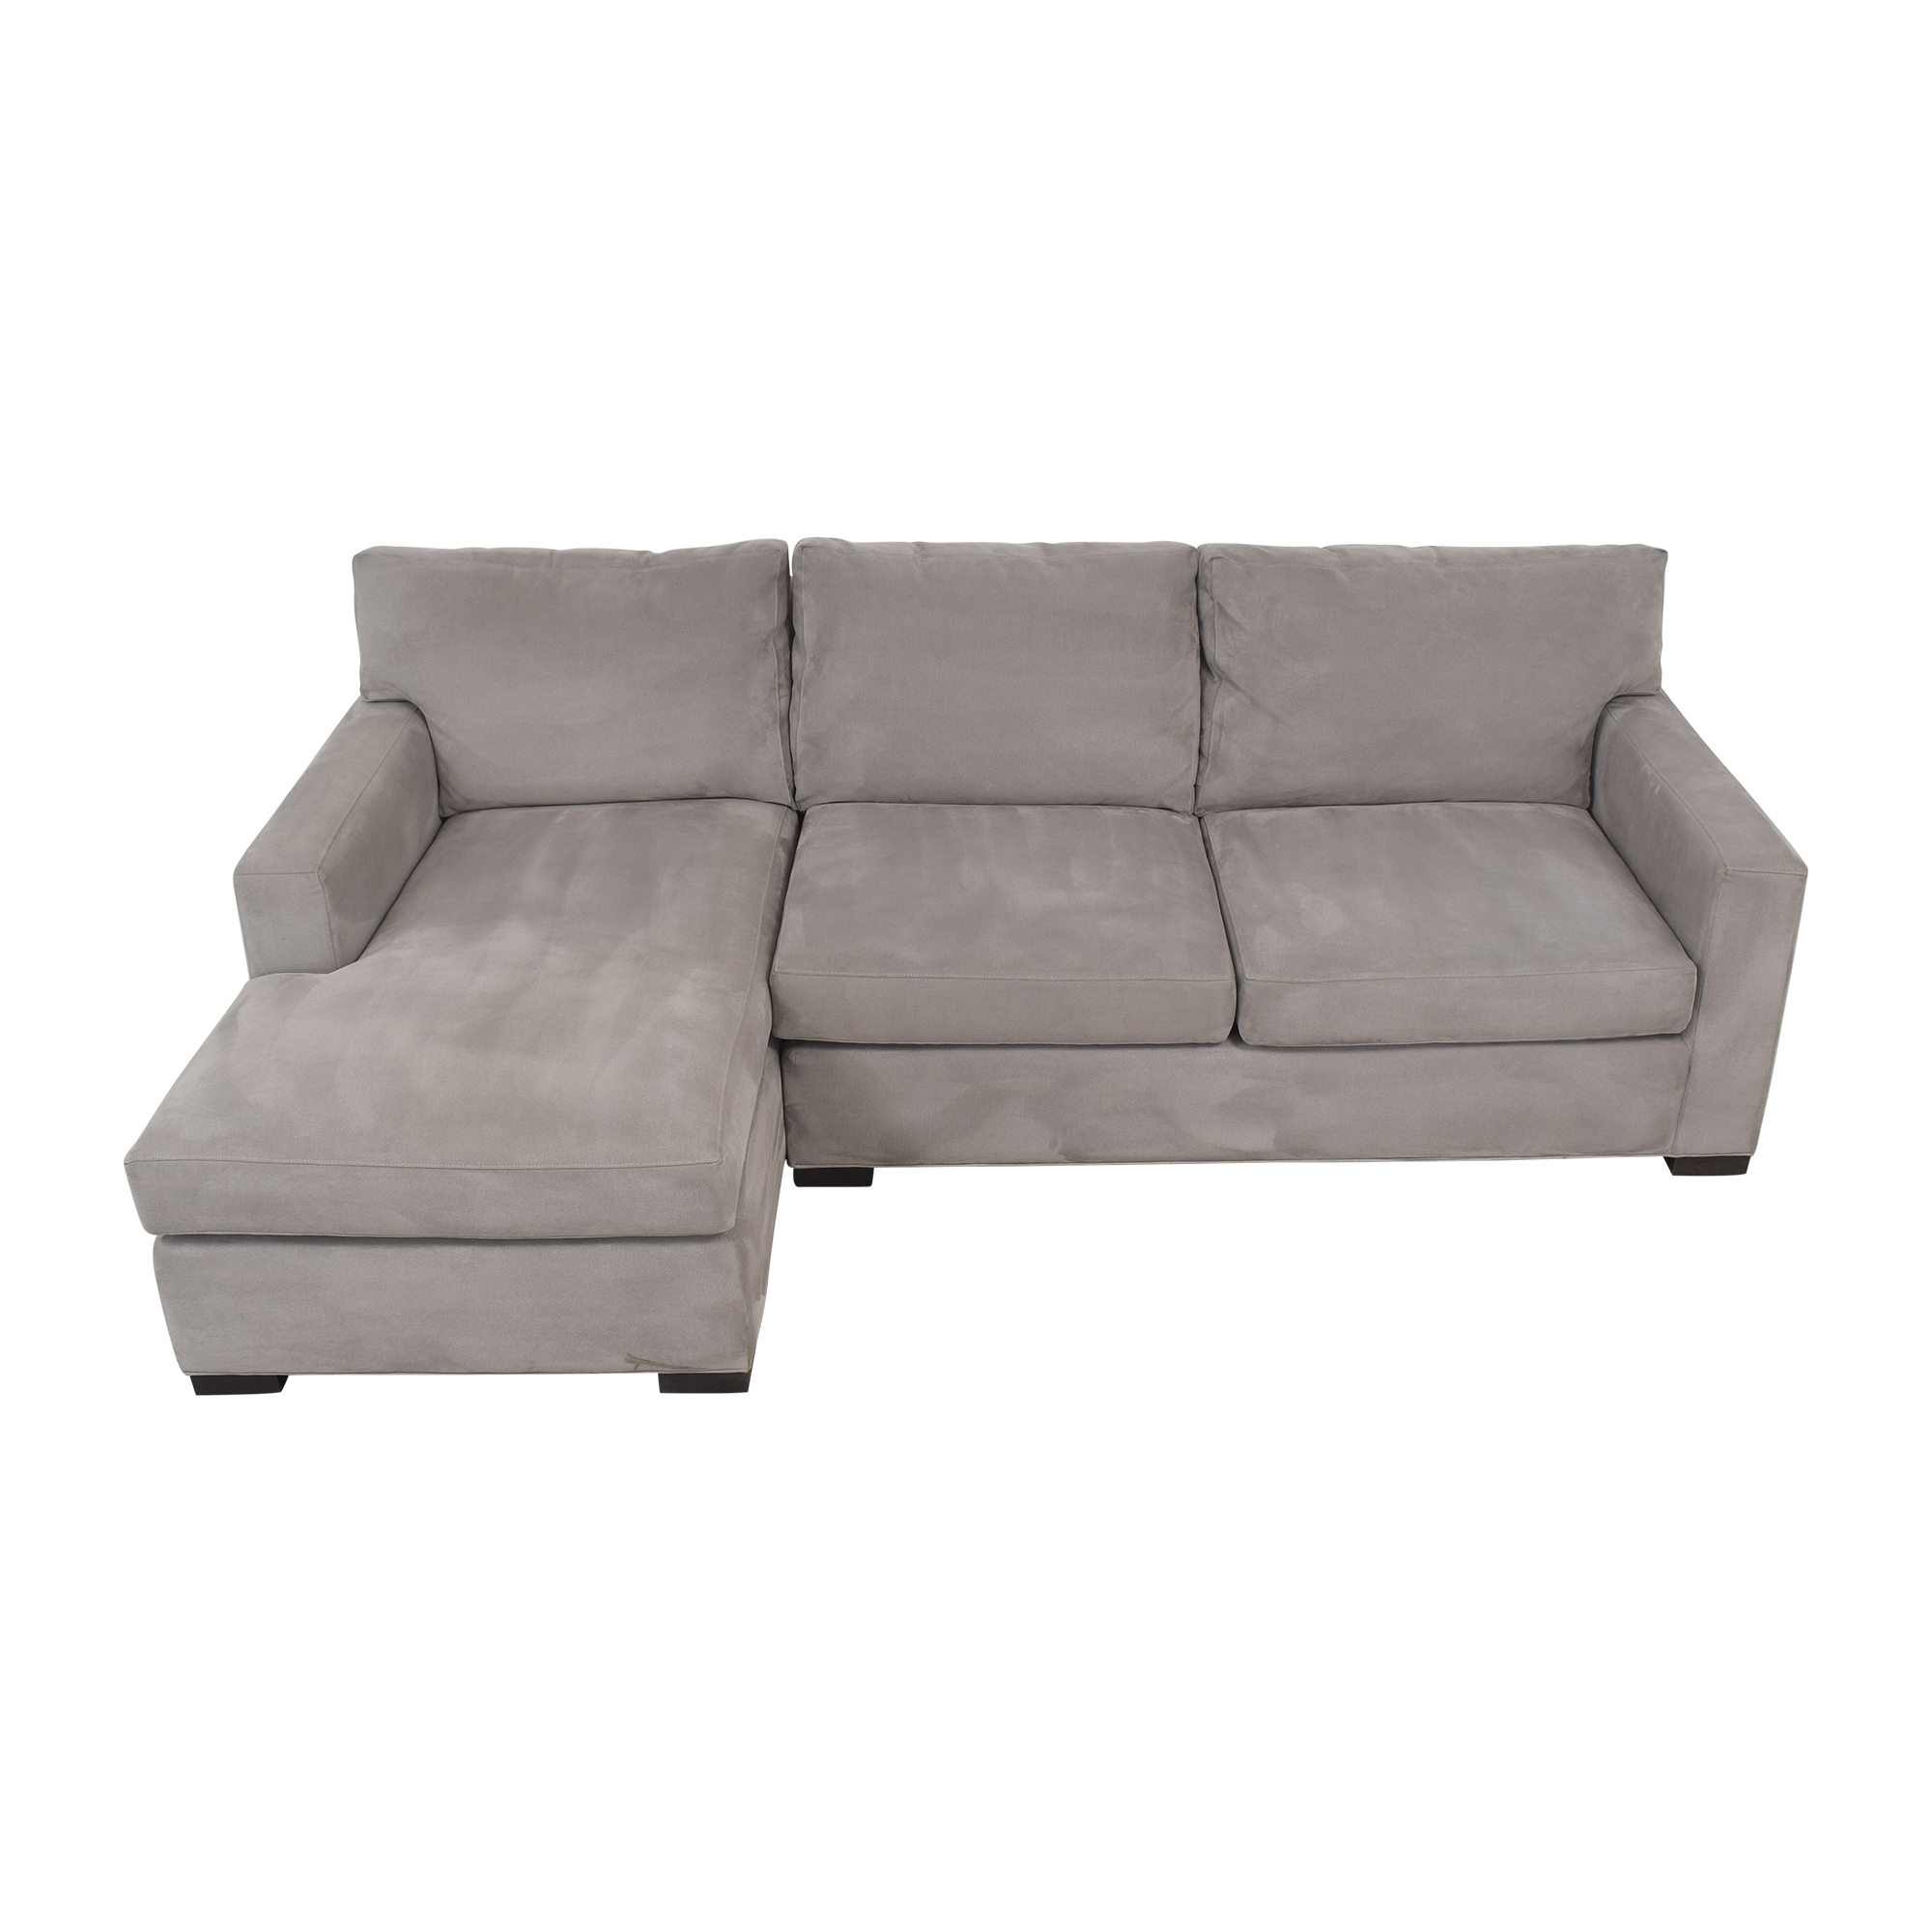 shop Crate & Barrel Axis II Two Piece Sectional Sofa Crate & Barrel Sectionals